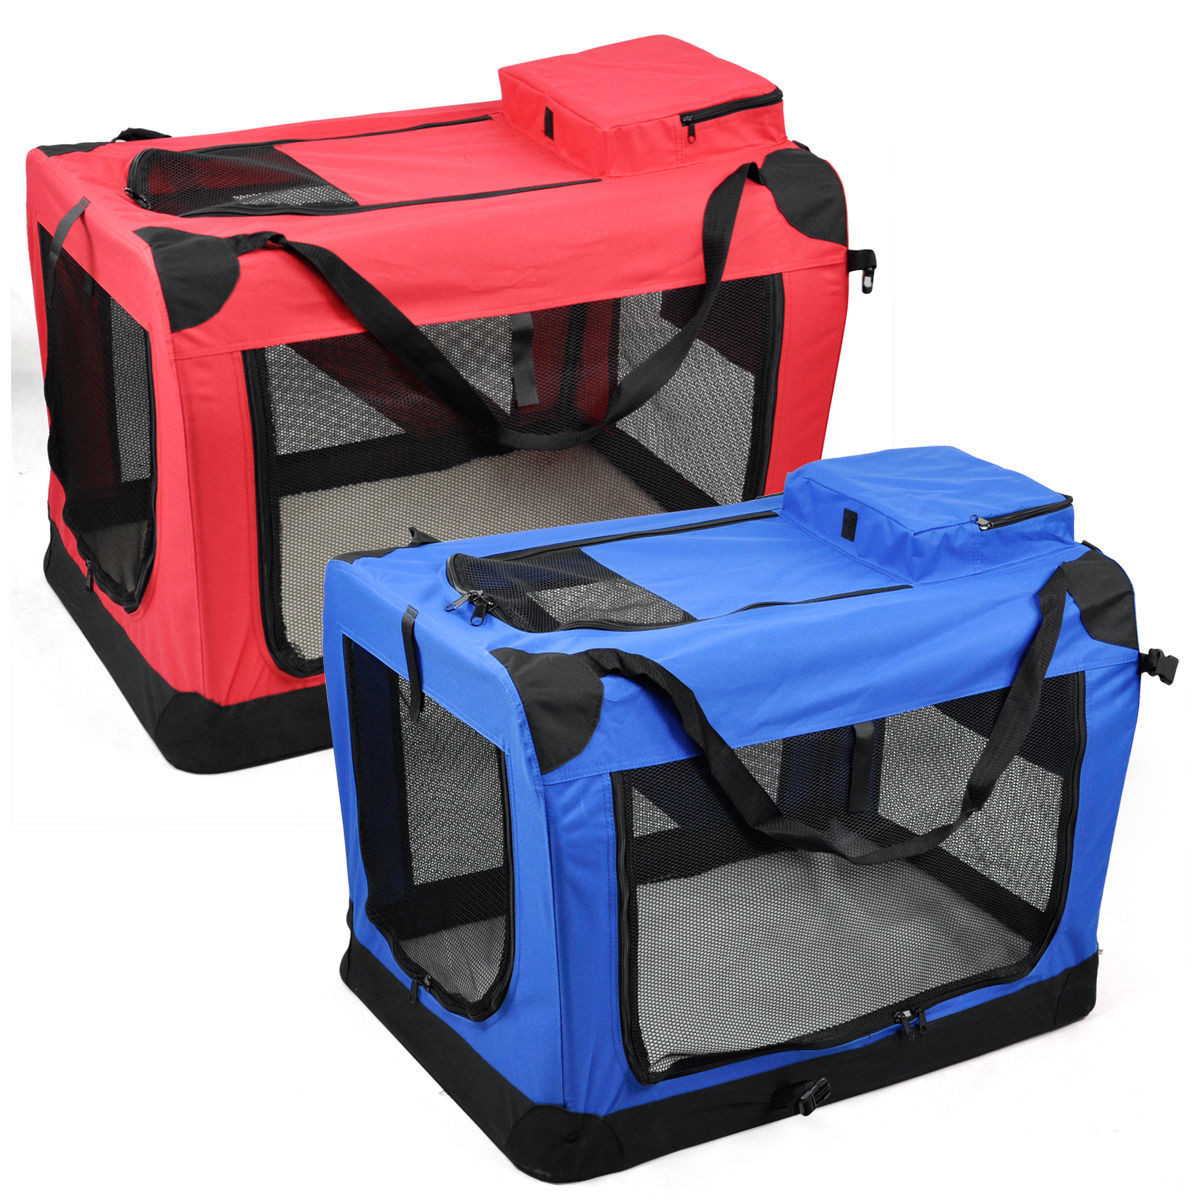 Luxury Airline Approved Soft Sided Portable Pet Carrier